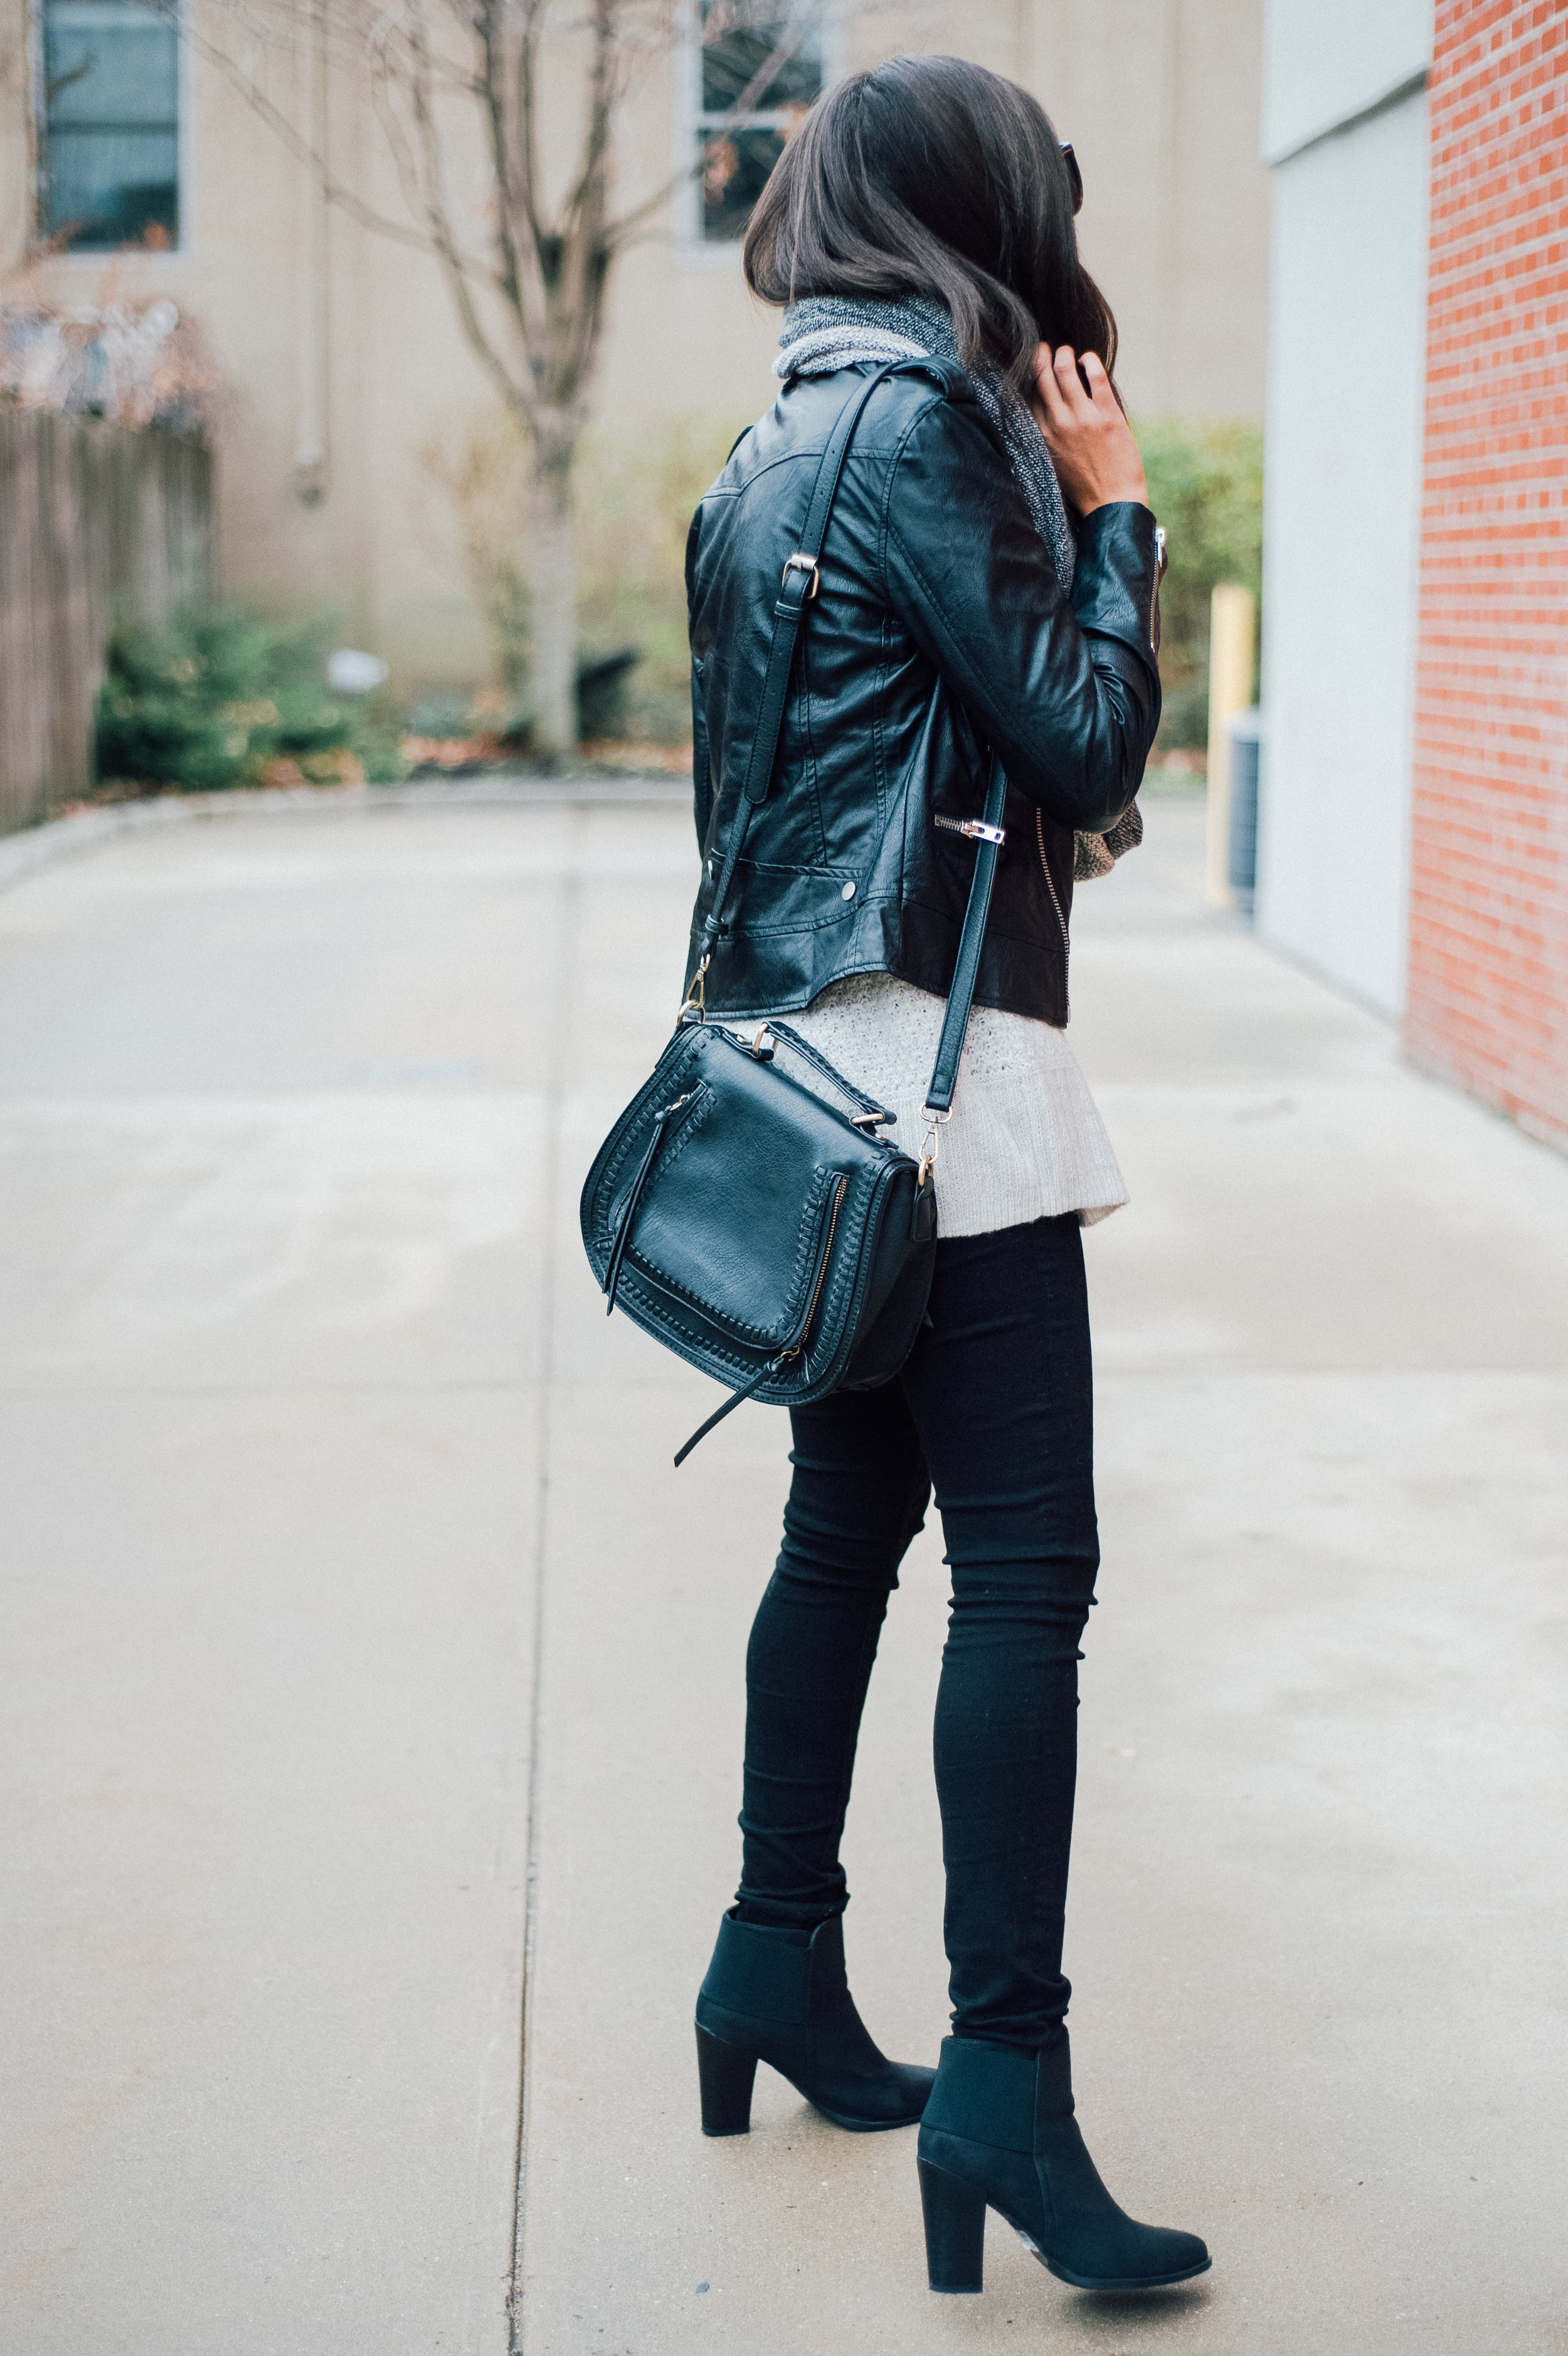 Black Faux Leather Jacket + Grey Infinity Scarf 25.jpg